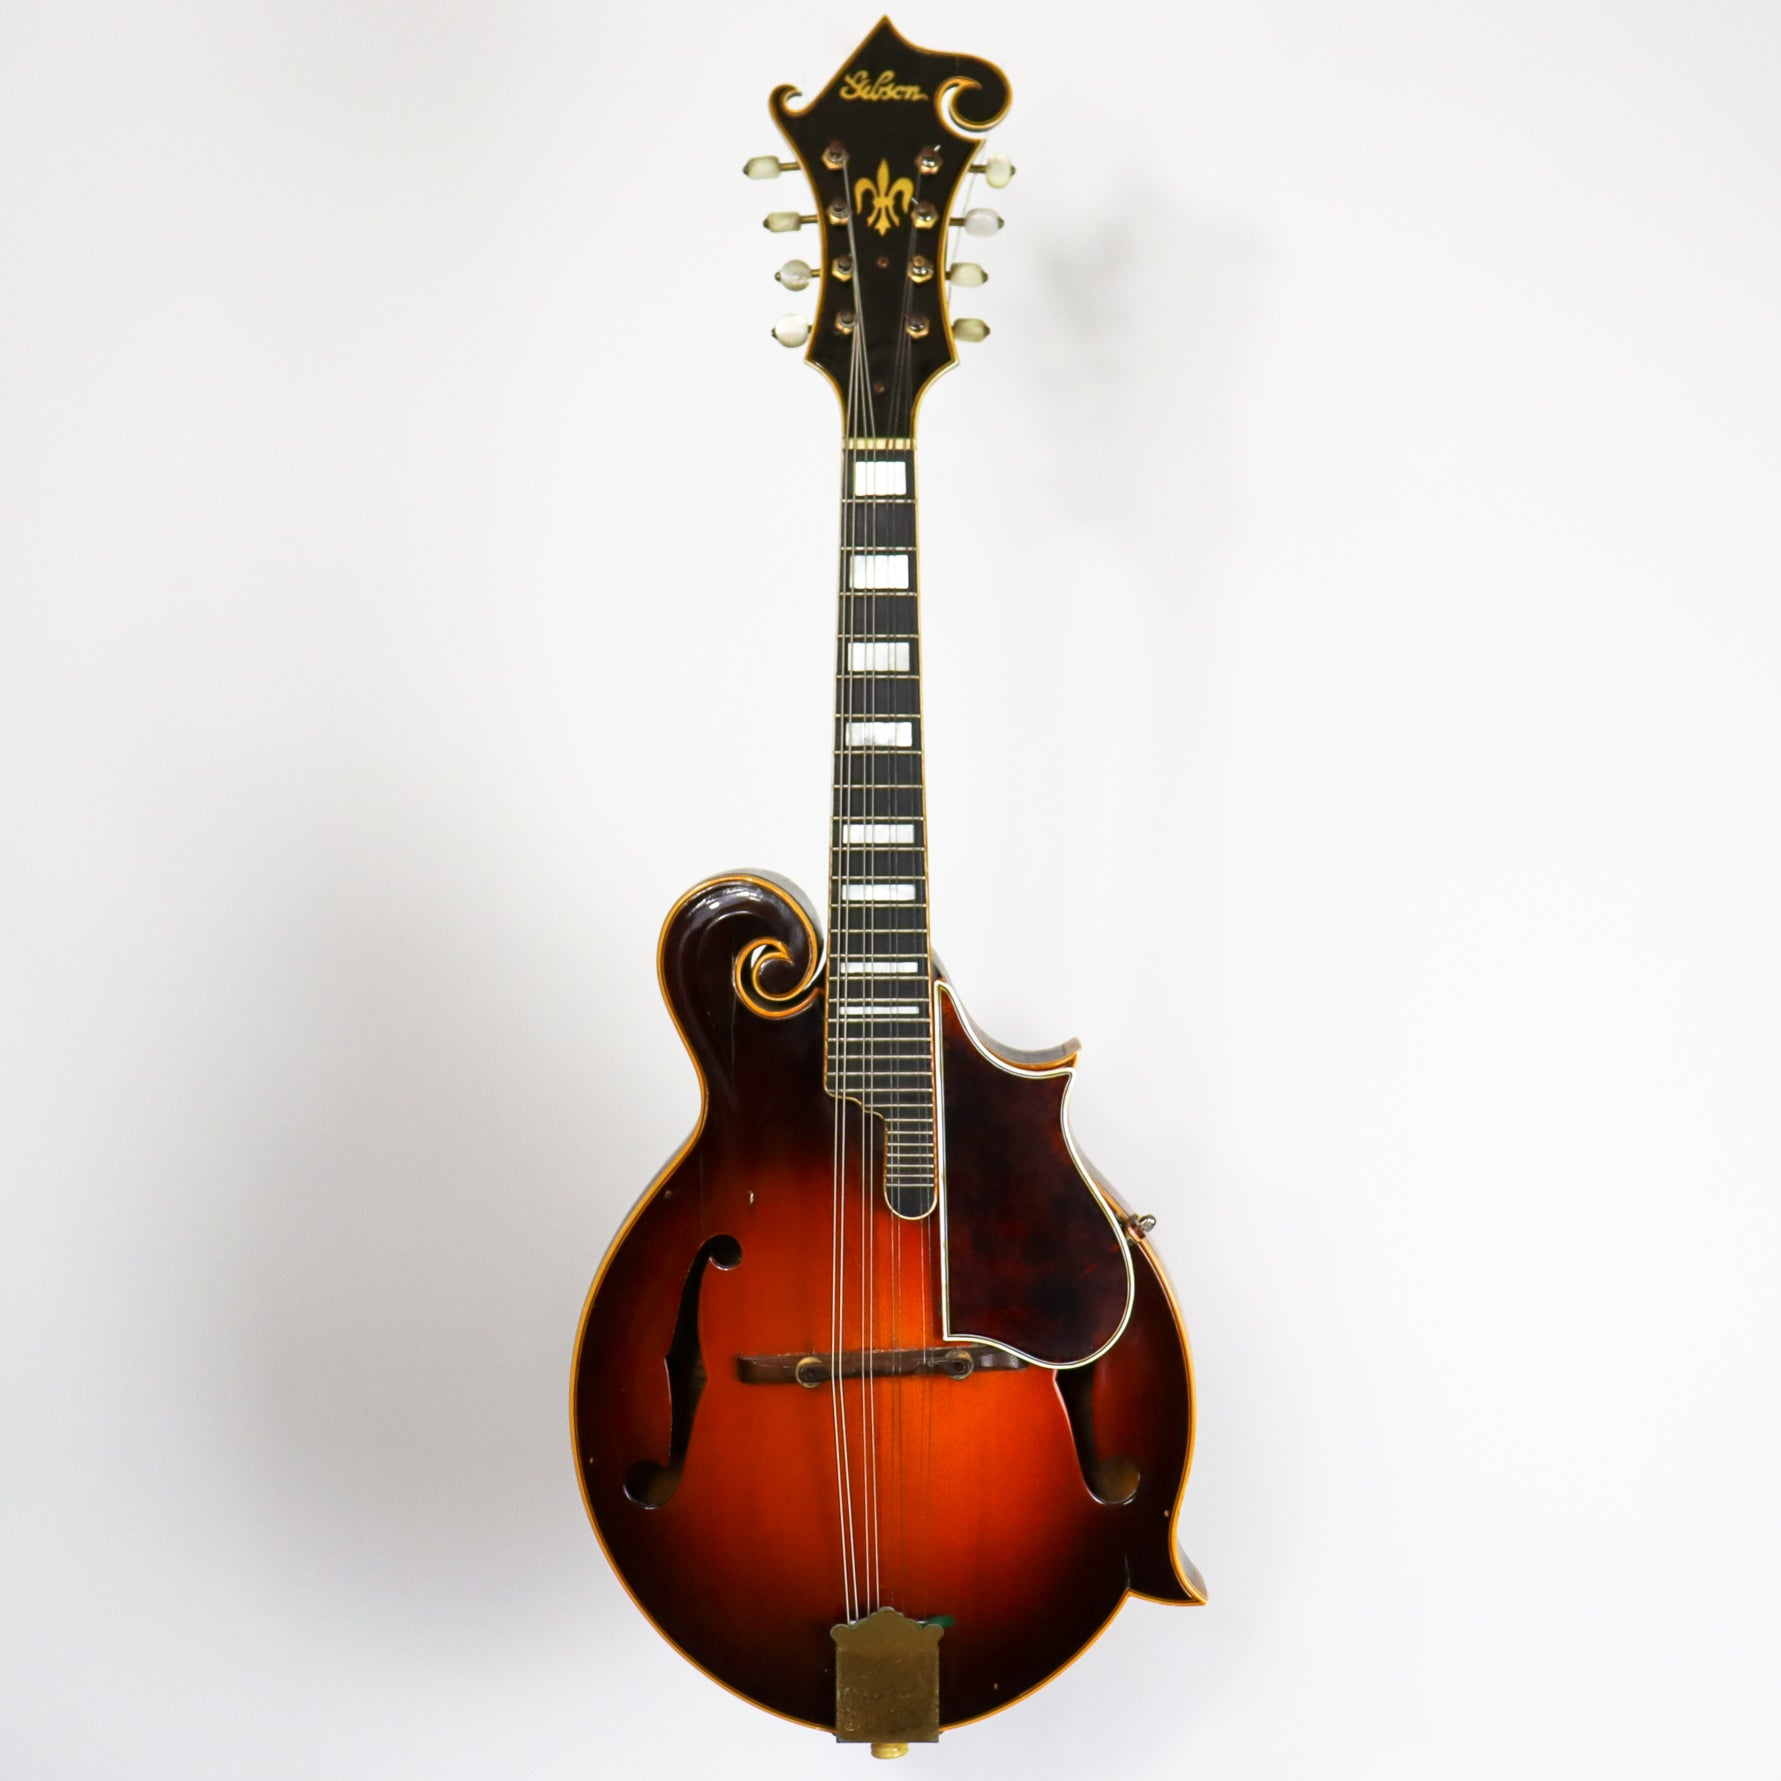 Gibson 1942 F-5 Mandolin, Factory Overspray with Original Hardshell Case